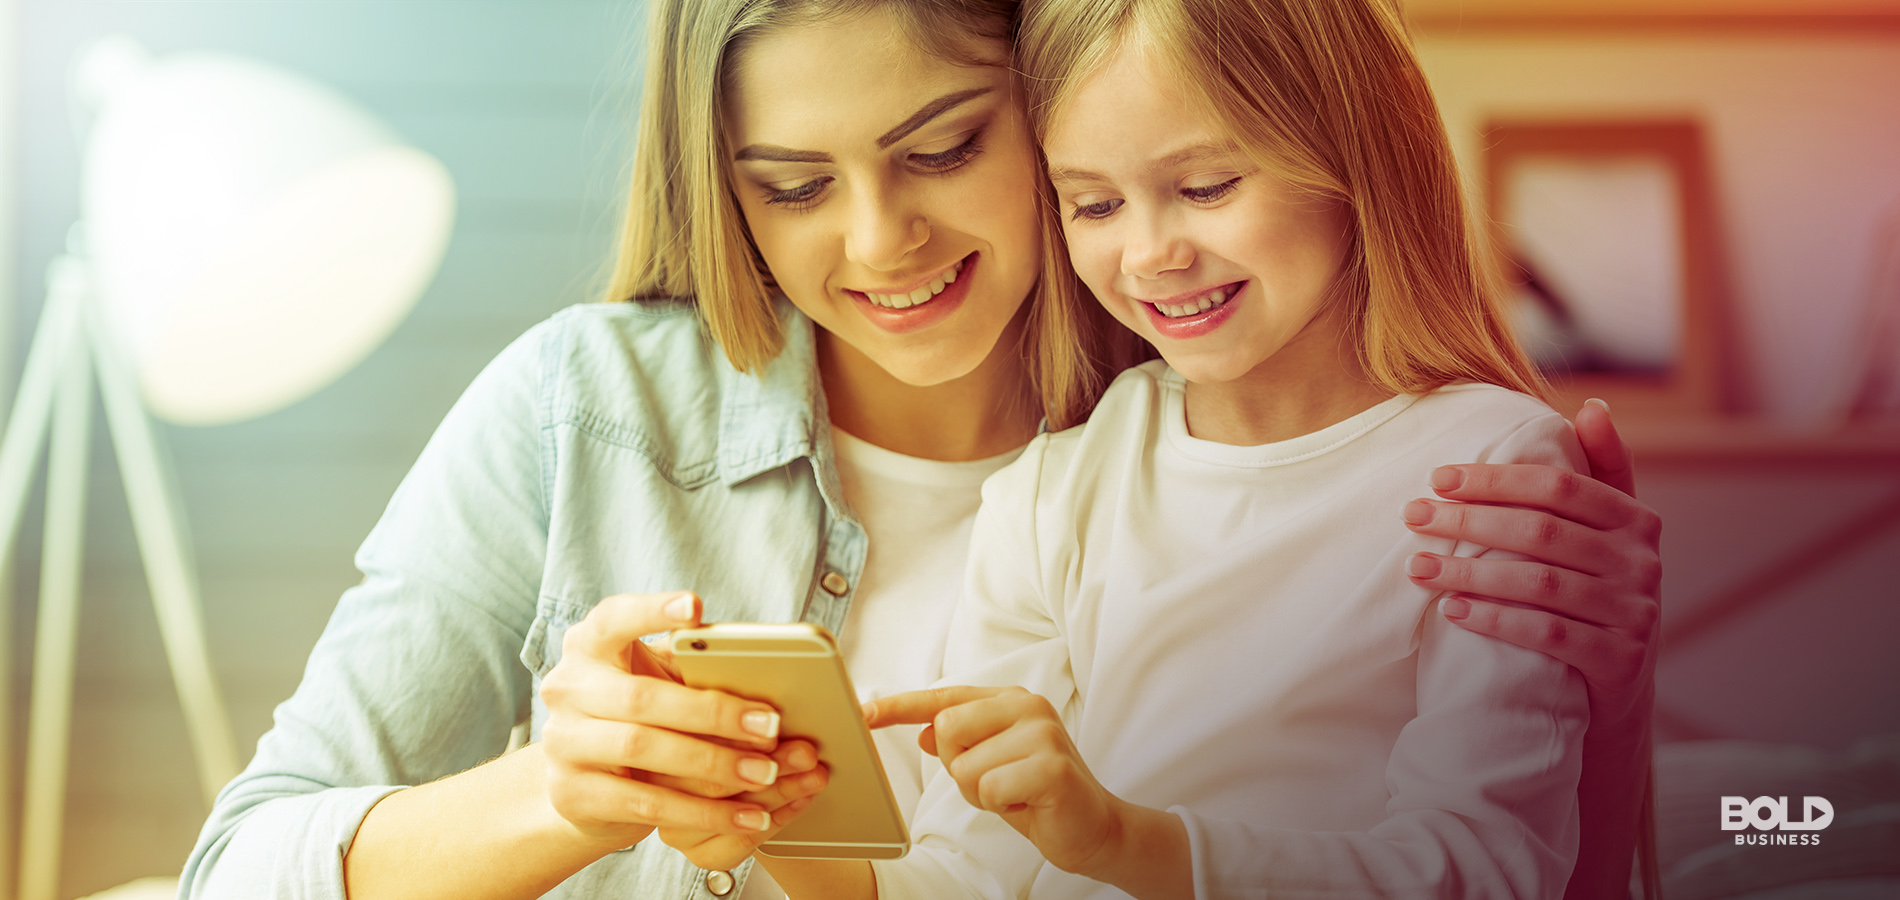 a photo of a young mother with her middle-school aged daughter looking at a smartphone that has several good apps for kids and best apps for kids installed in it